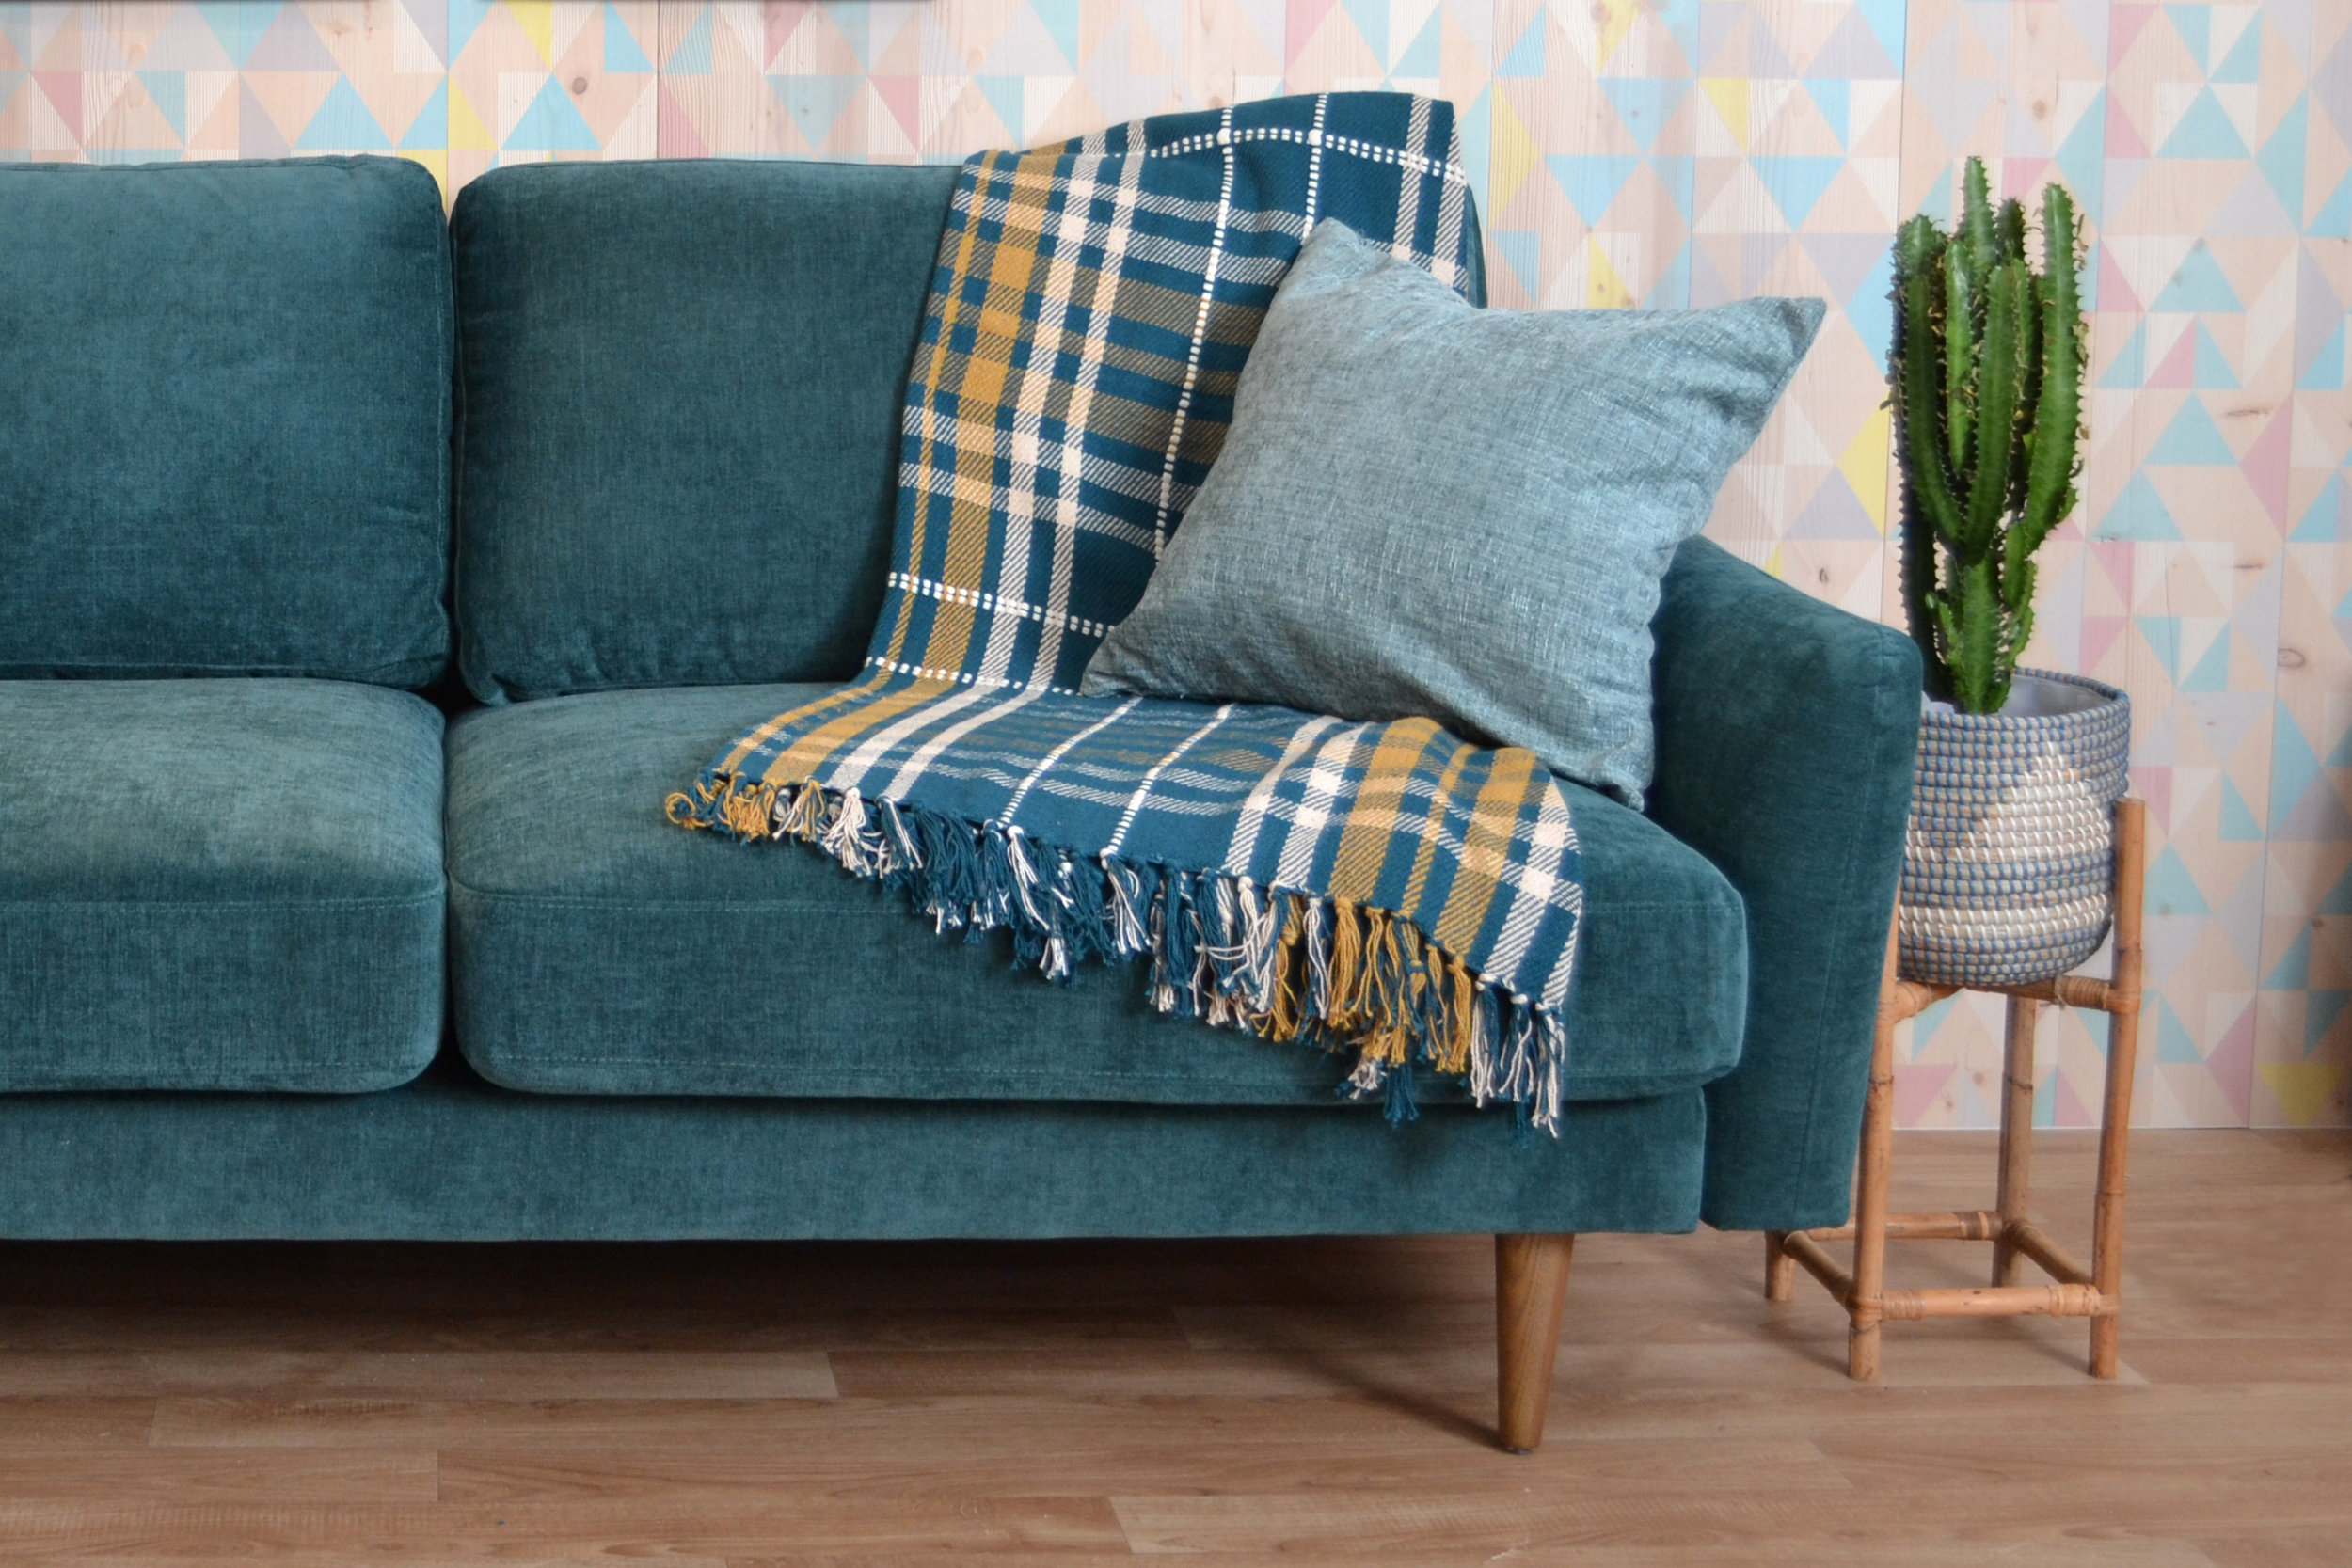 100 days of bliss or your money back. - We are giving you 100 days to test out your Snug Shack sofa. If you don't love it as much as we do you can return it for a full refund. Just drop us a message using the form on our contact page to let us know.